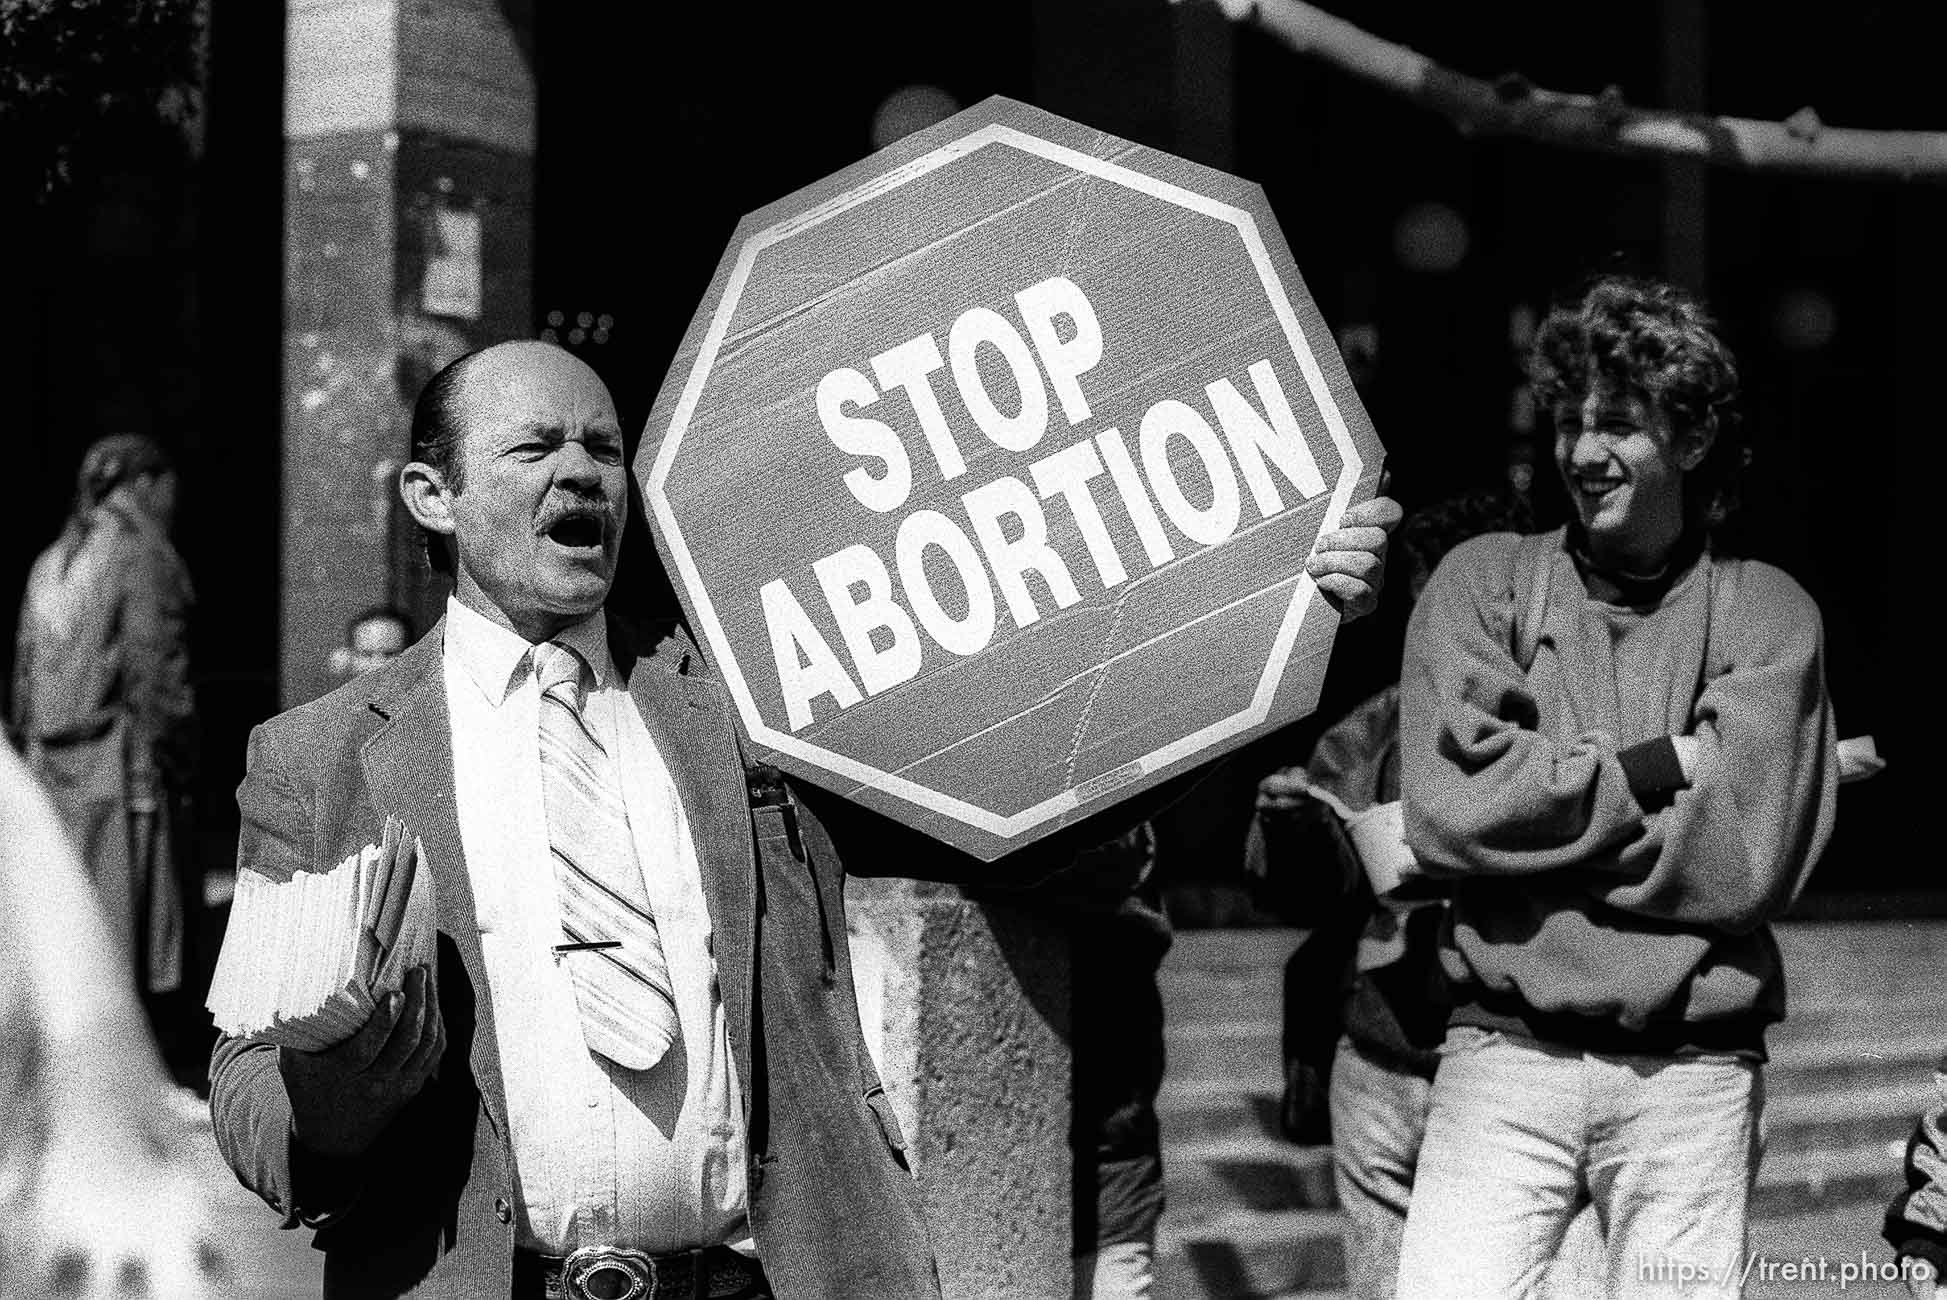 People laugh at anti-abortion protester